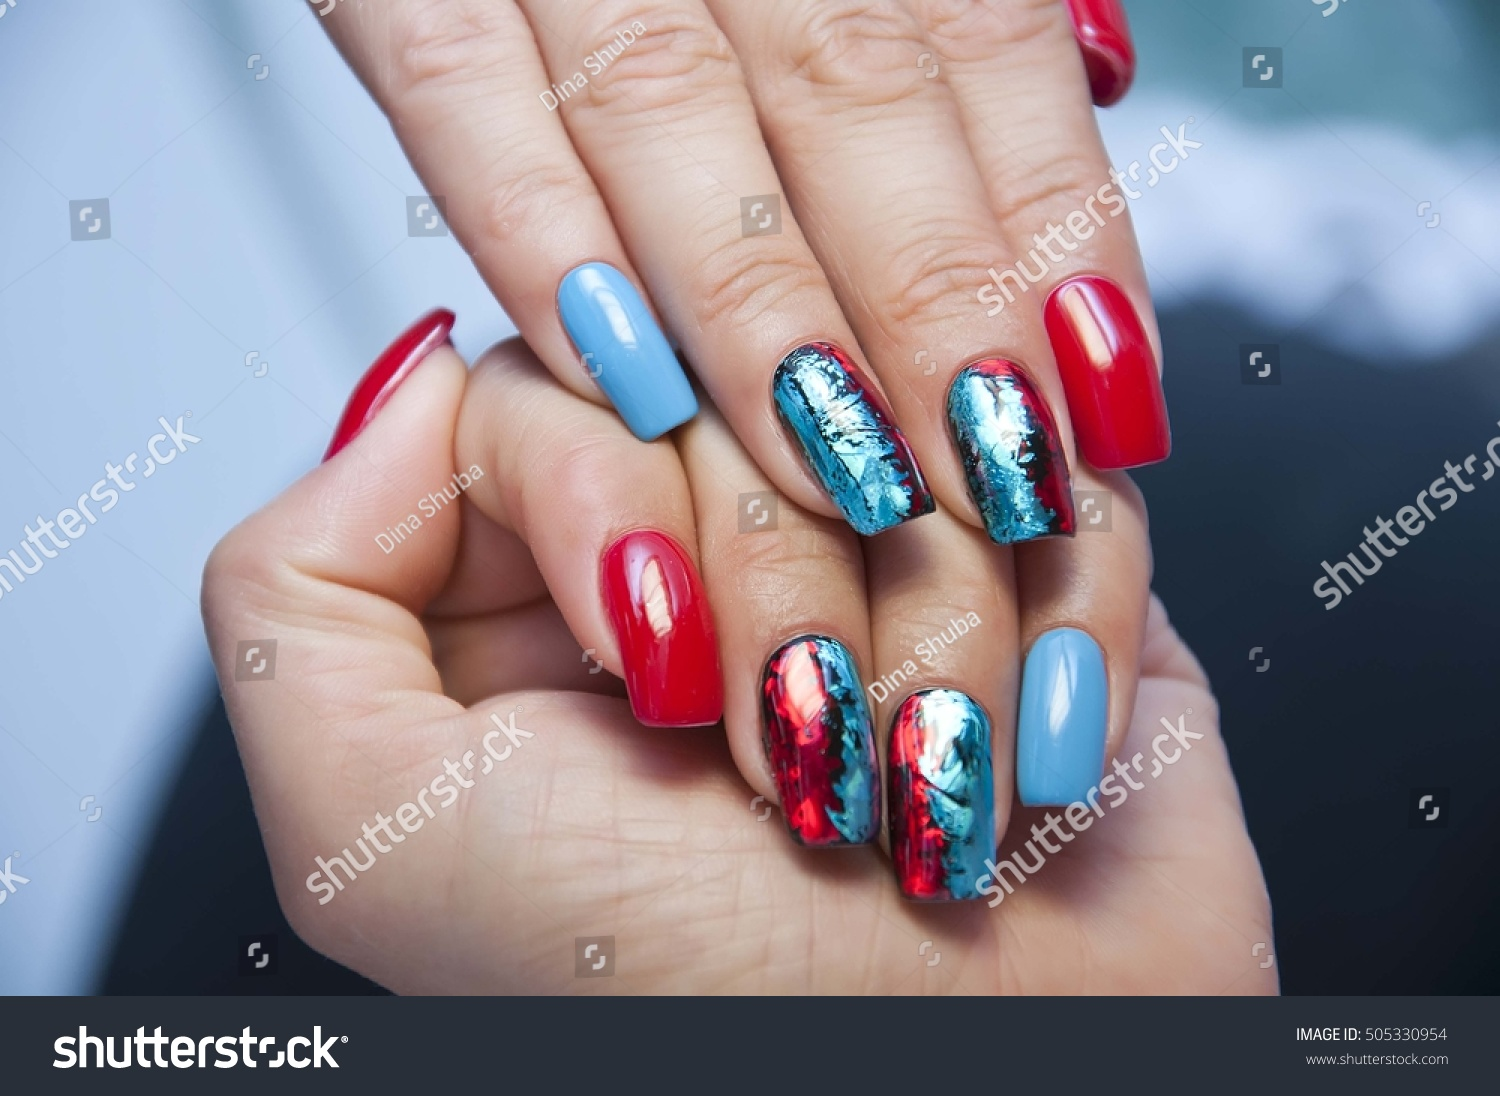 Blue Red Manicure Foil On Long Stock Photo (Royalty Free) 505330954 ...